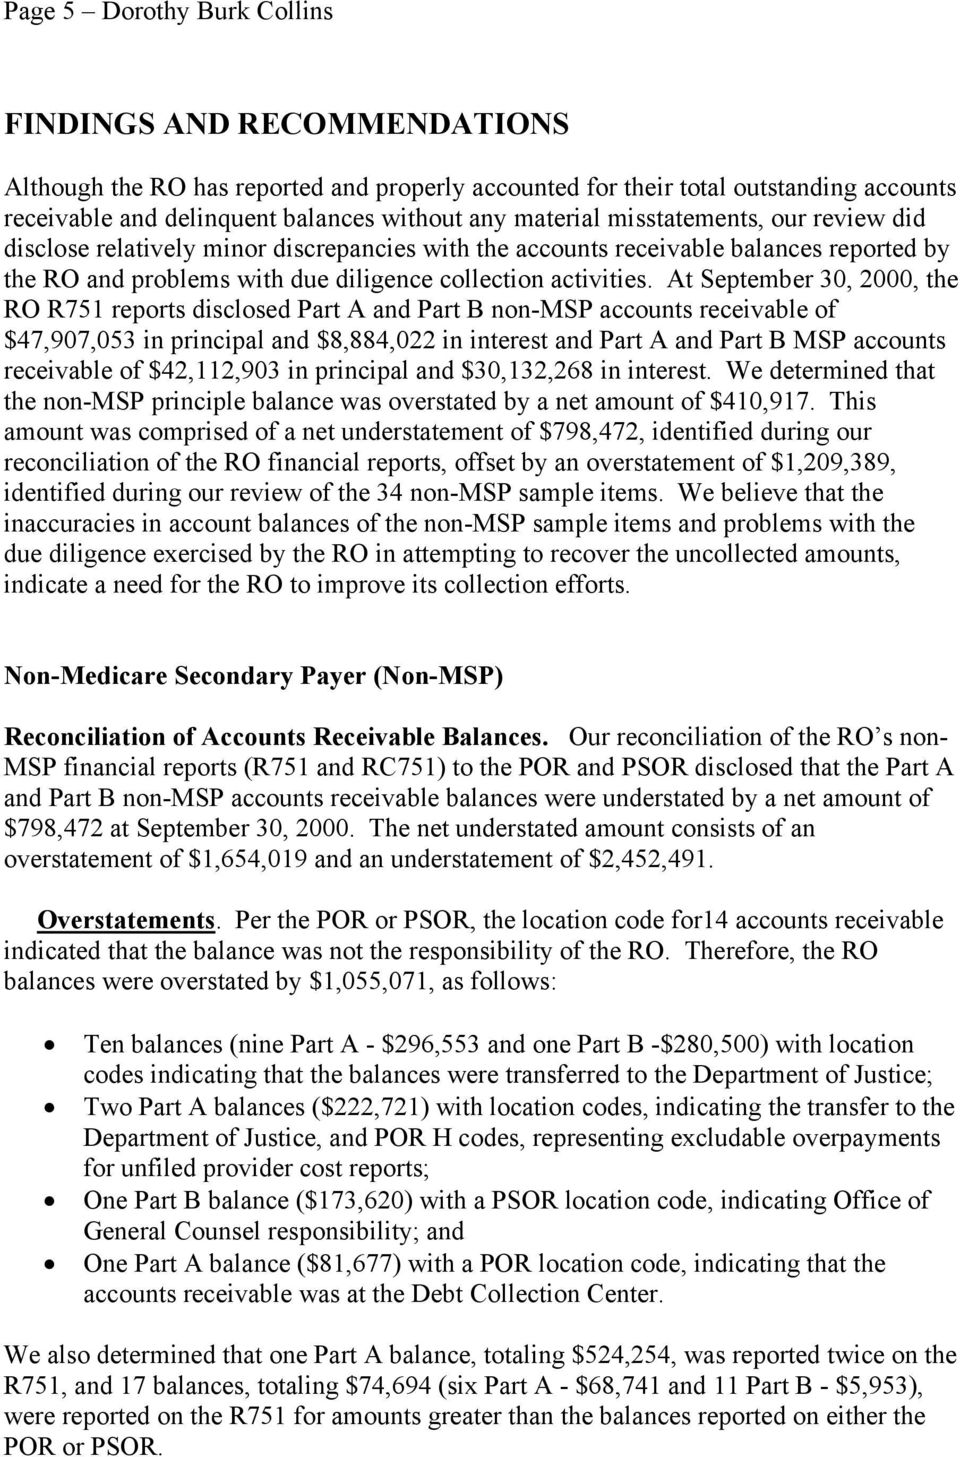 At September 30, 2000, the RO R751 reports disclosed Part A and Part B non-msp accounts receivable of $47,907,053 in principal and $8,884,022 in interest and Part A and Part B MSP accounts receivable